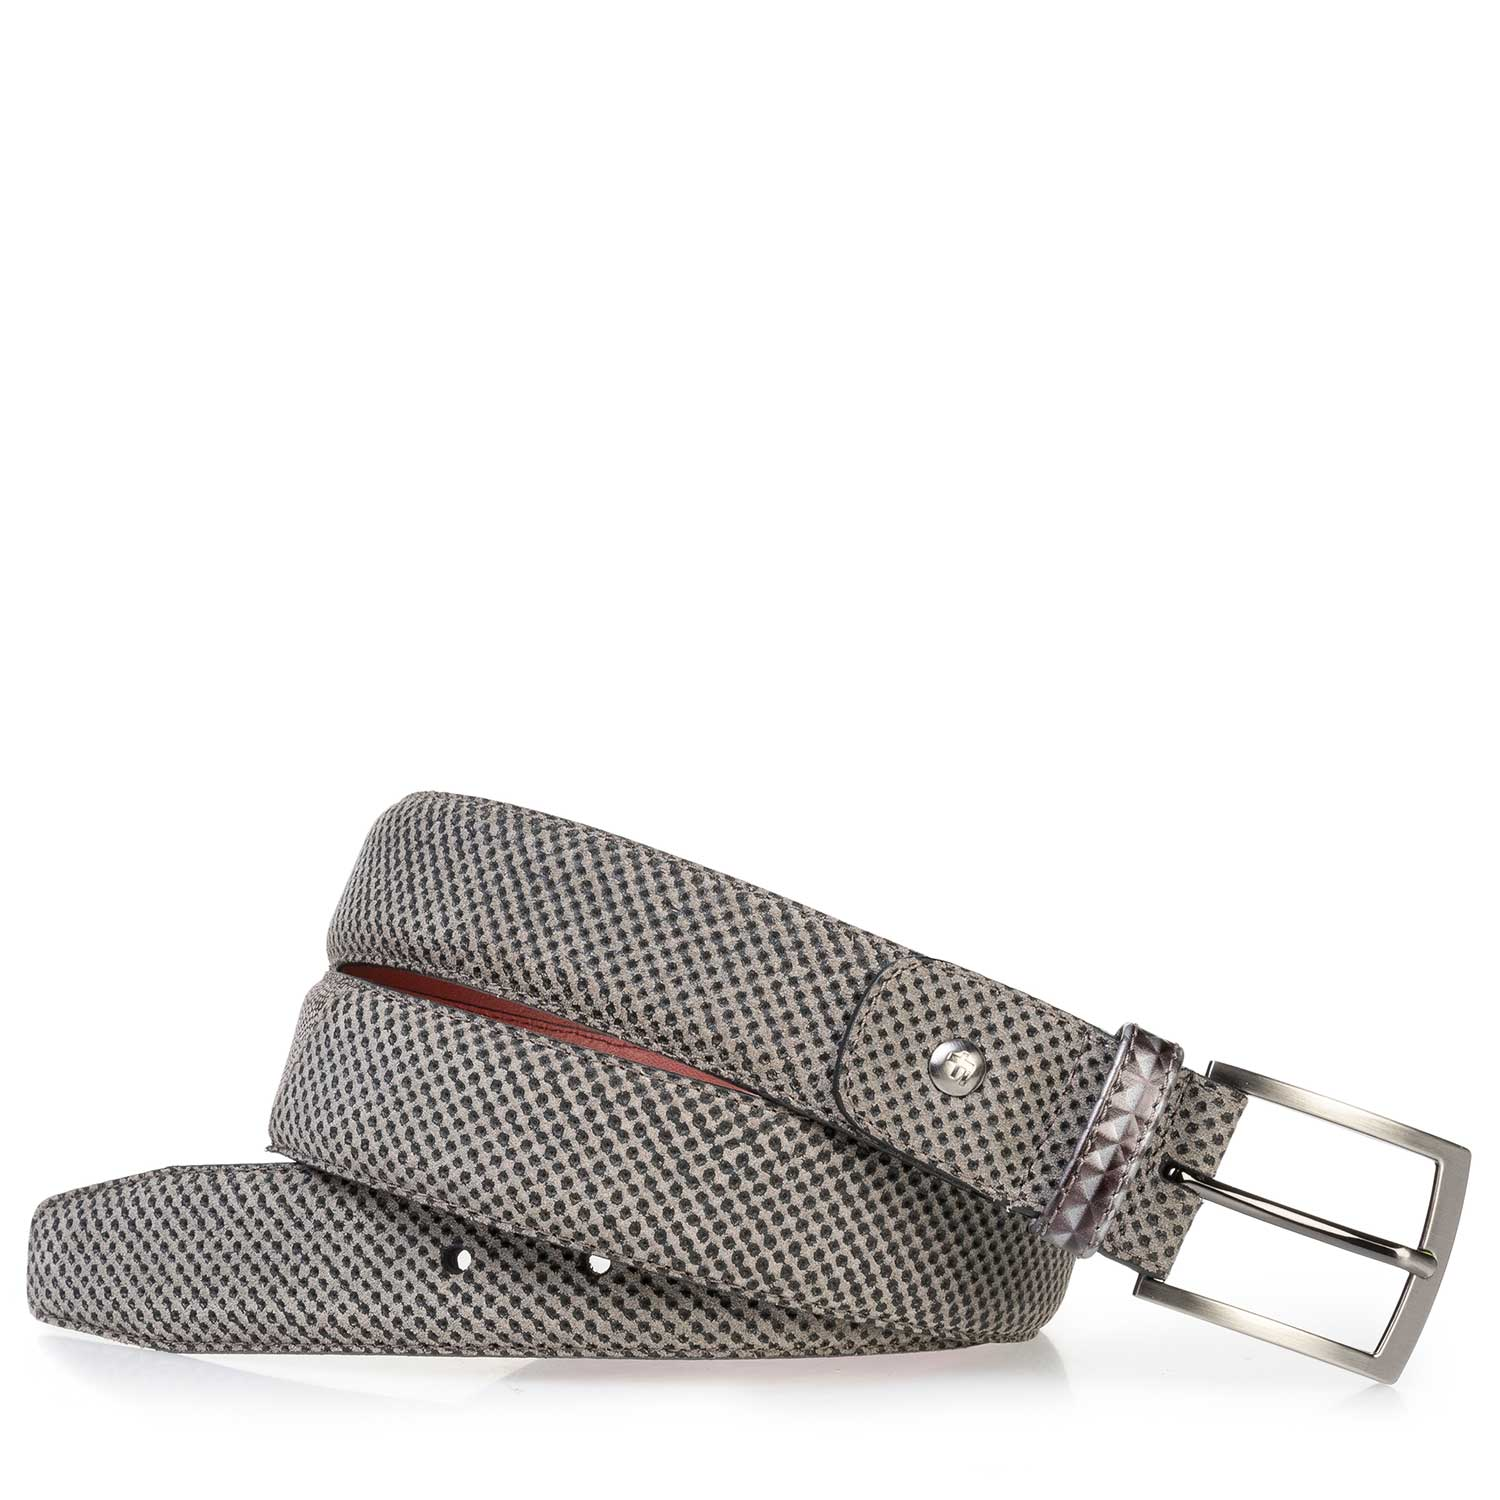 75188/22 - Taupe-colored suede leather belt with a print